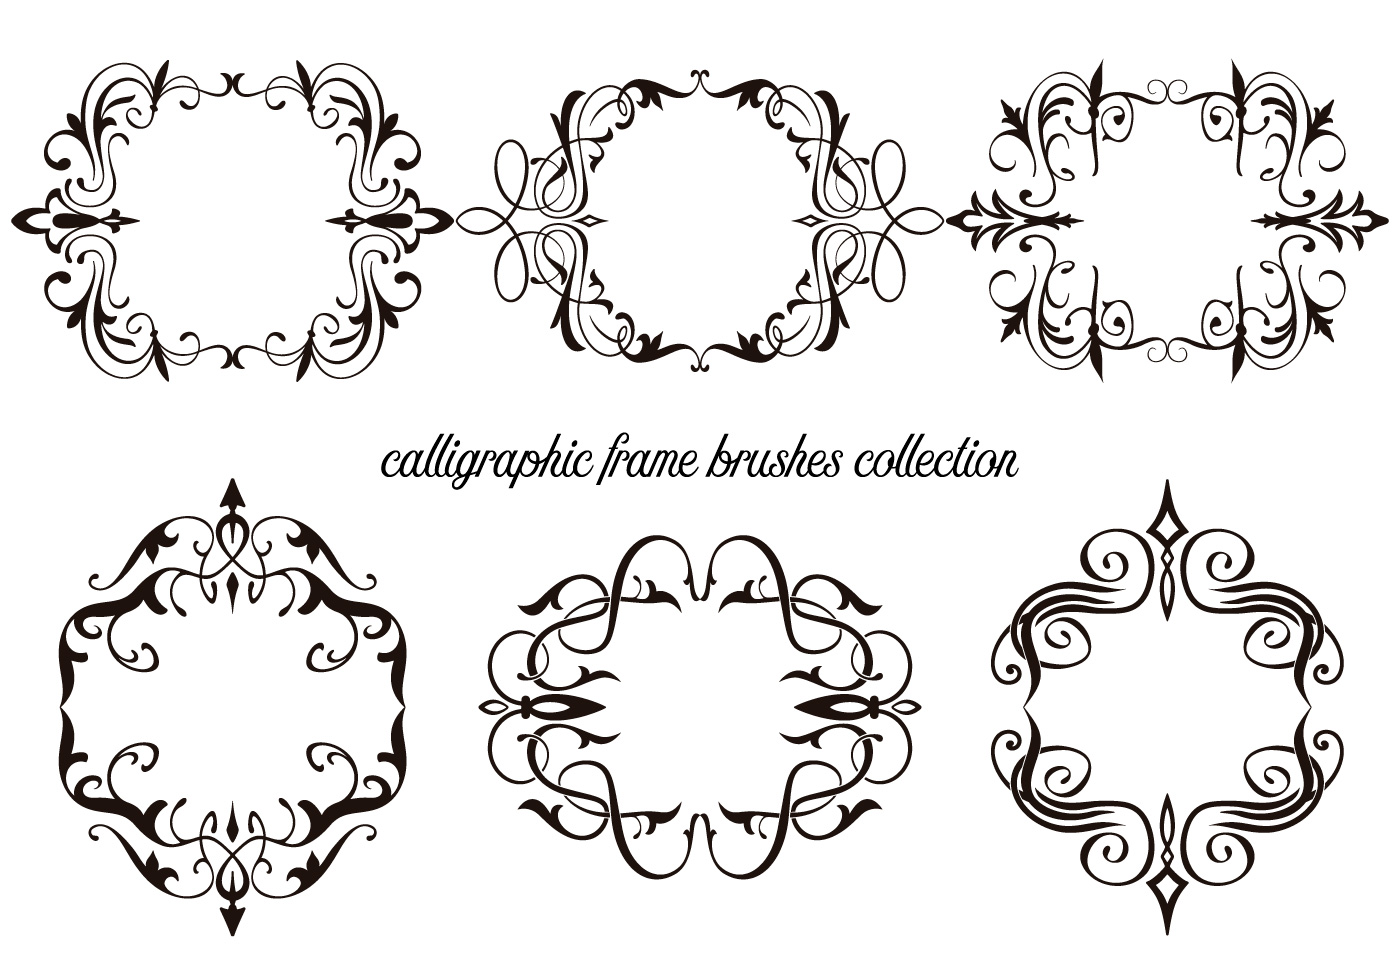 Calligraphic frame brushes collection free photoshop